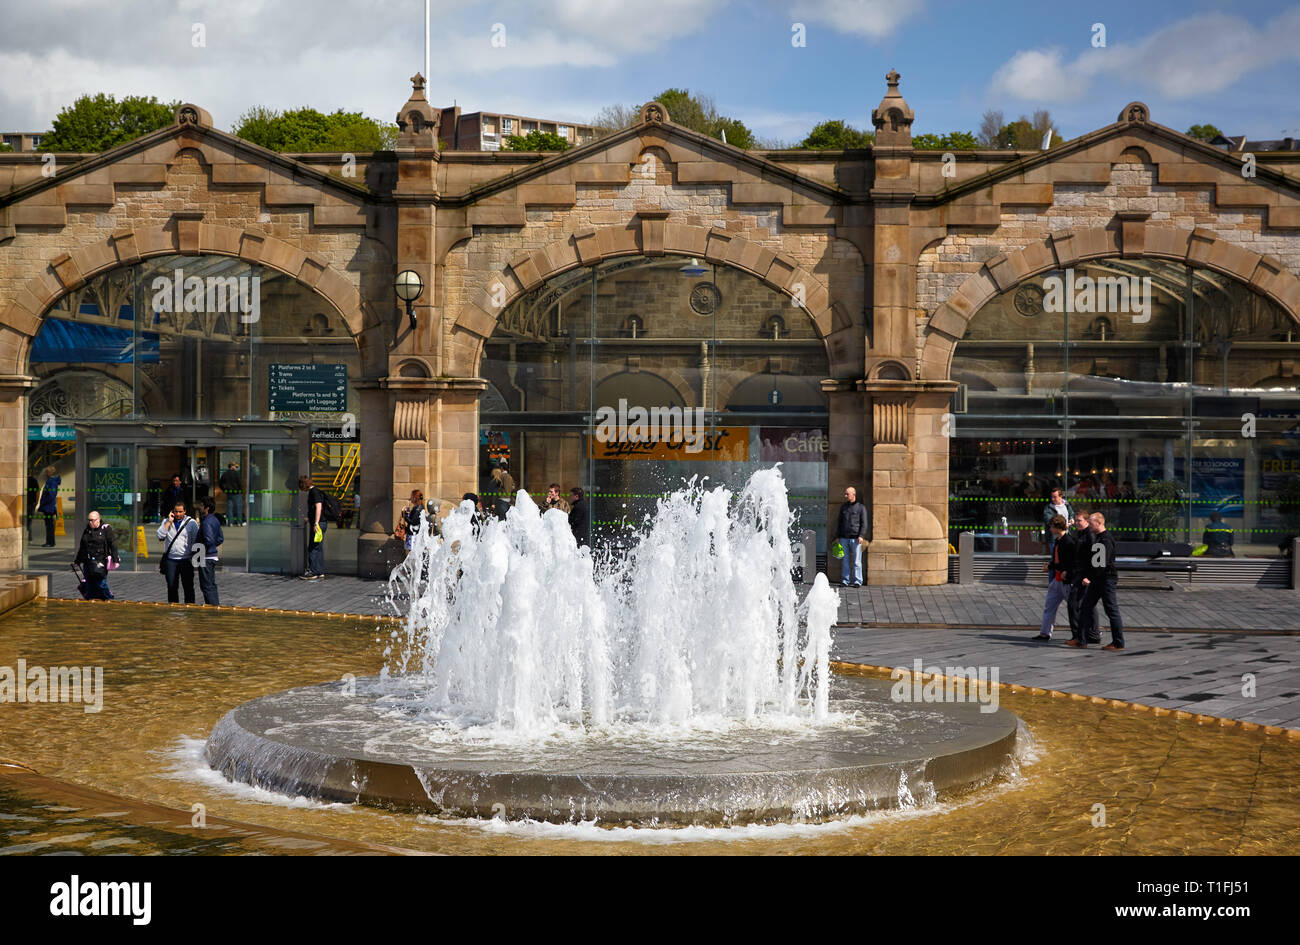 SHEFFIELD, ENGLAND - MAY 8, 2009: The view of the fountain on the Sheaf Square in front of Sheffield railway station building. South Yorkshire. Englan - Stock Image